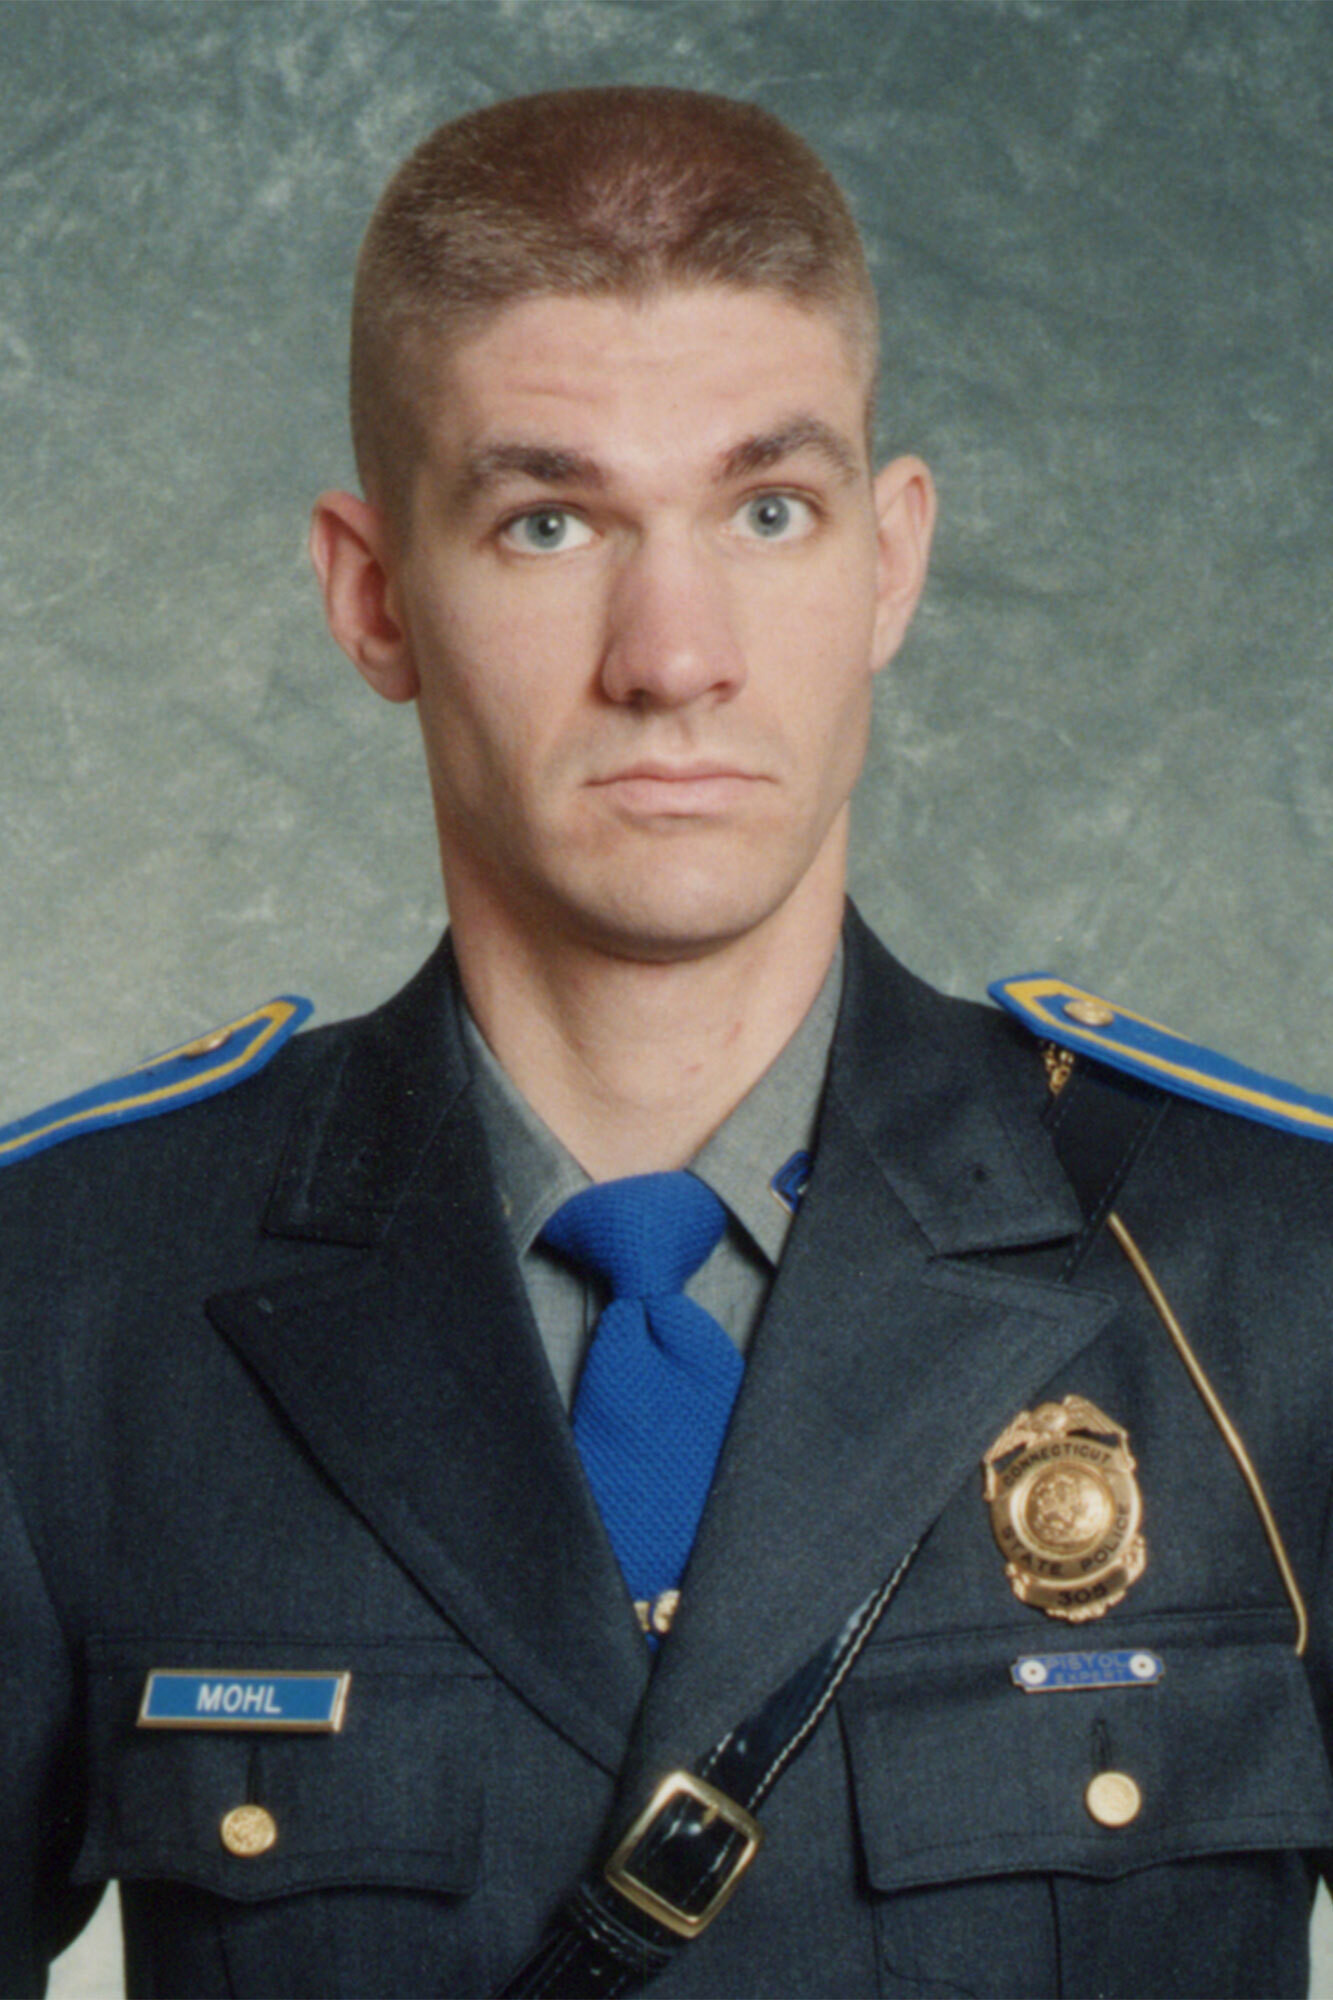 Sergeant Brian Mohl   Connecticut State Police, Connecticut